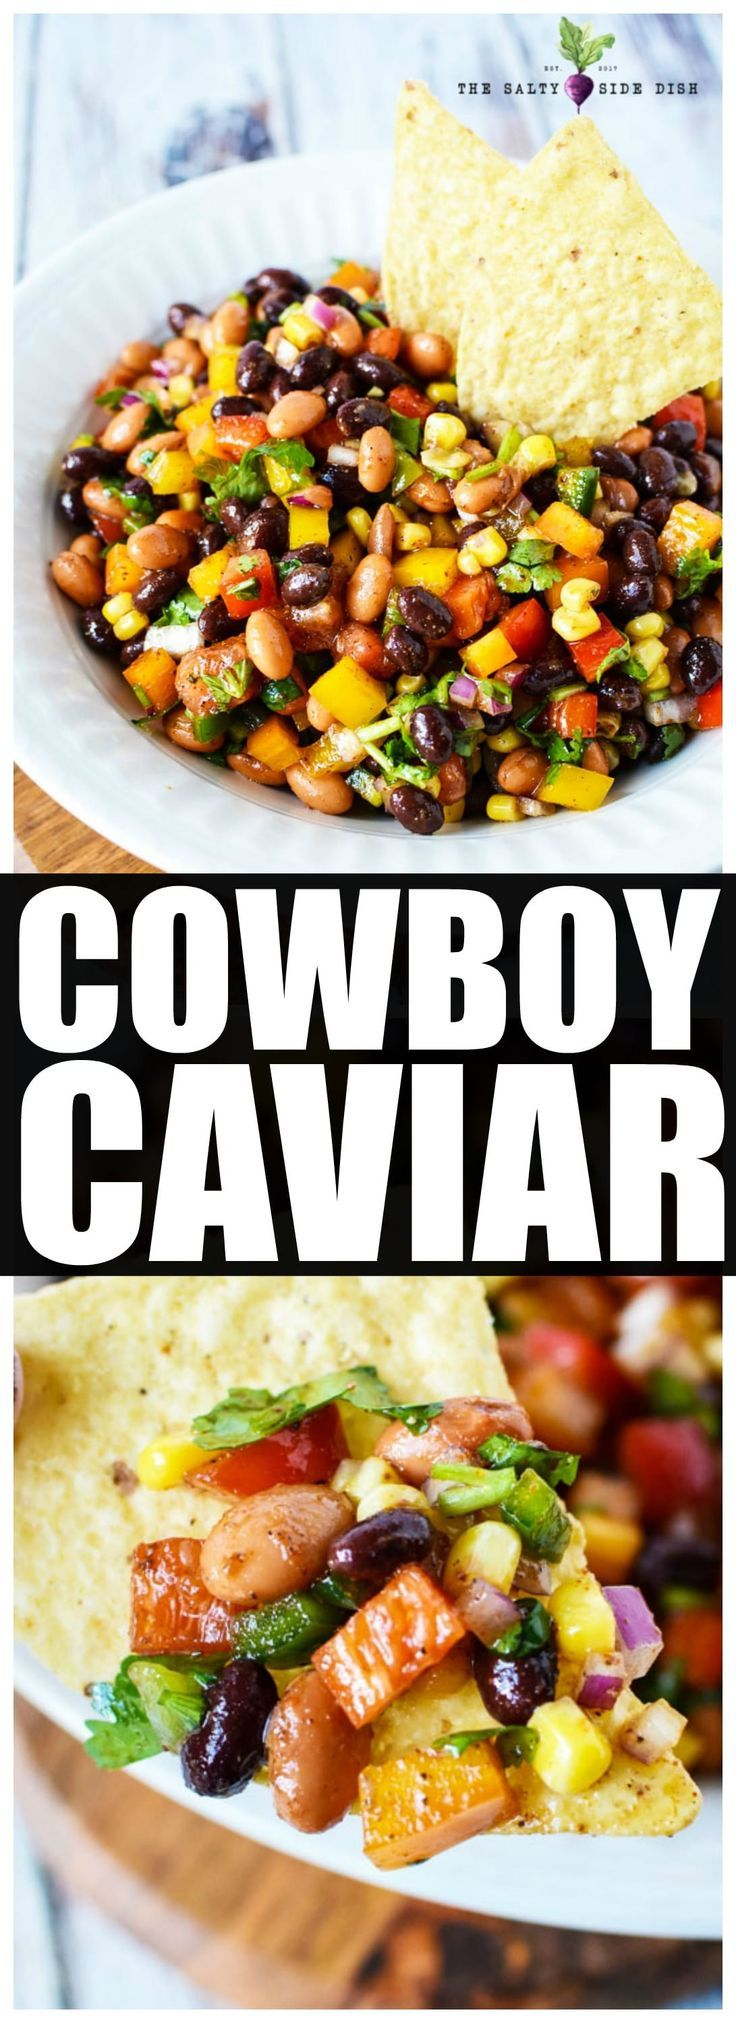 Cowboy Caviar | Easy Texas Dip with Avocado | Salty Side Dish #dipsandappetizers